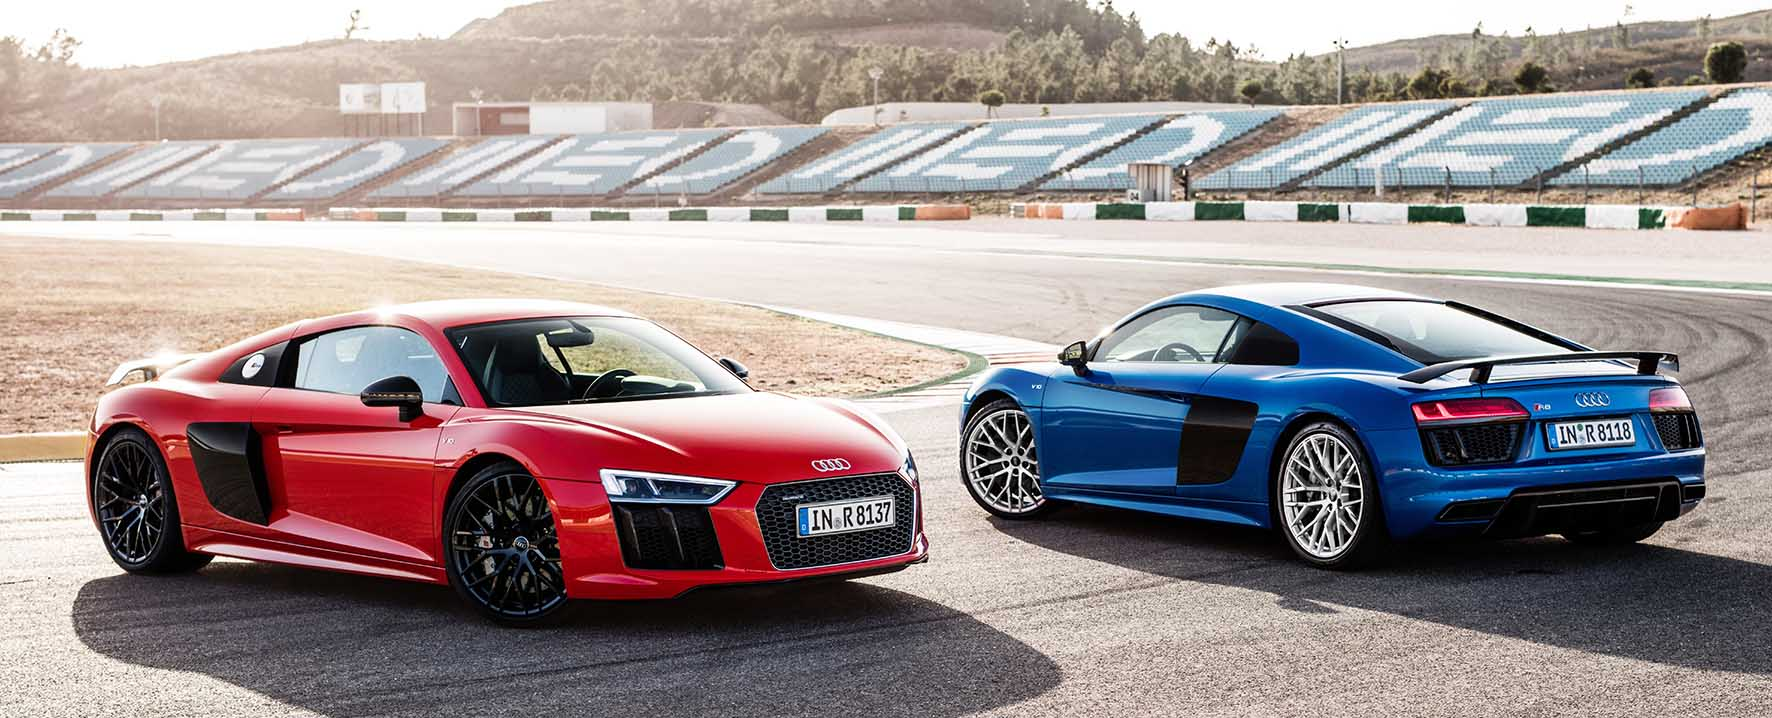 Audi new R8 2015 front rear